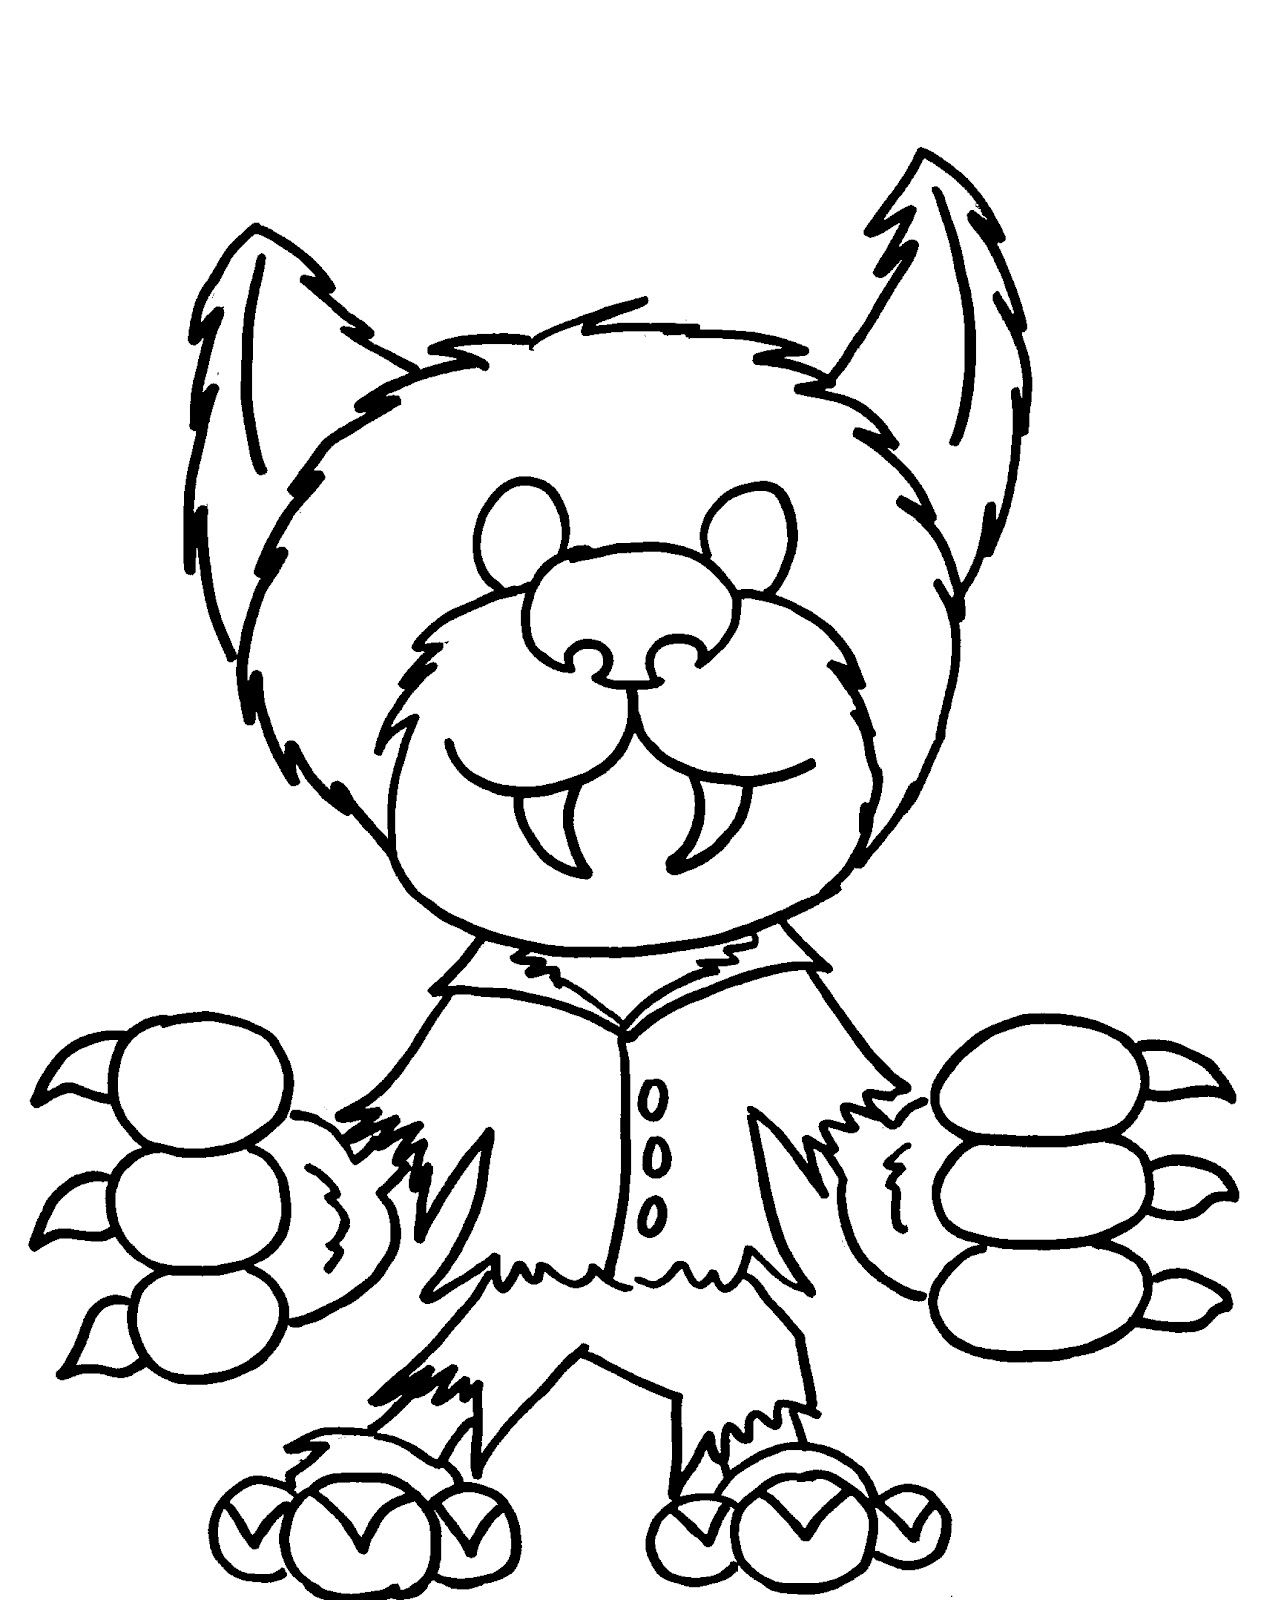 cute printable halloween coloring pages coloring pages coloring page halloween pages for adults cute halloween coloring pages best coloring pages